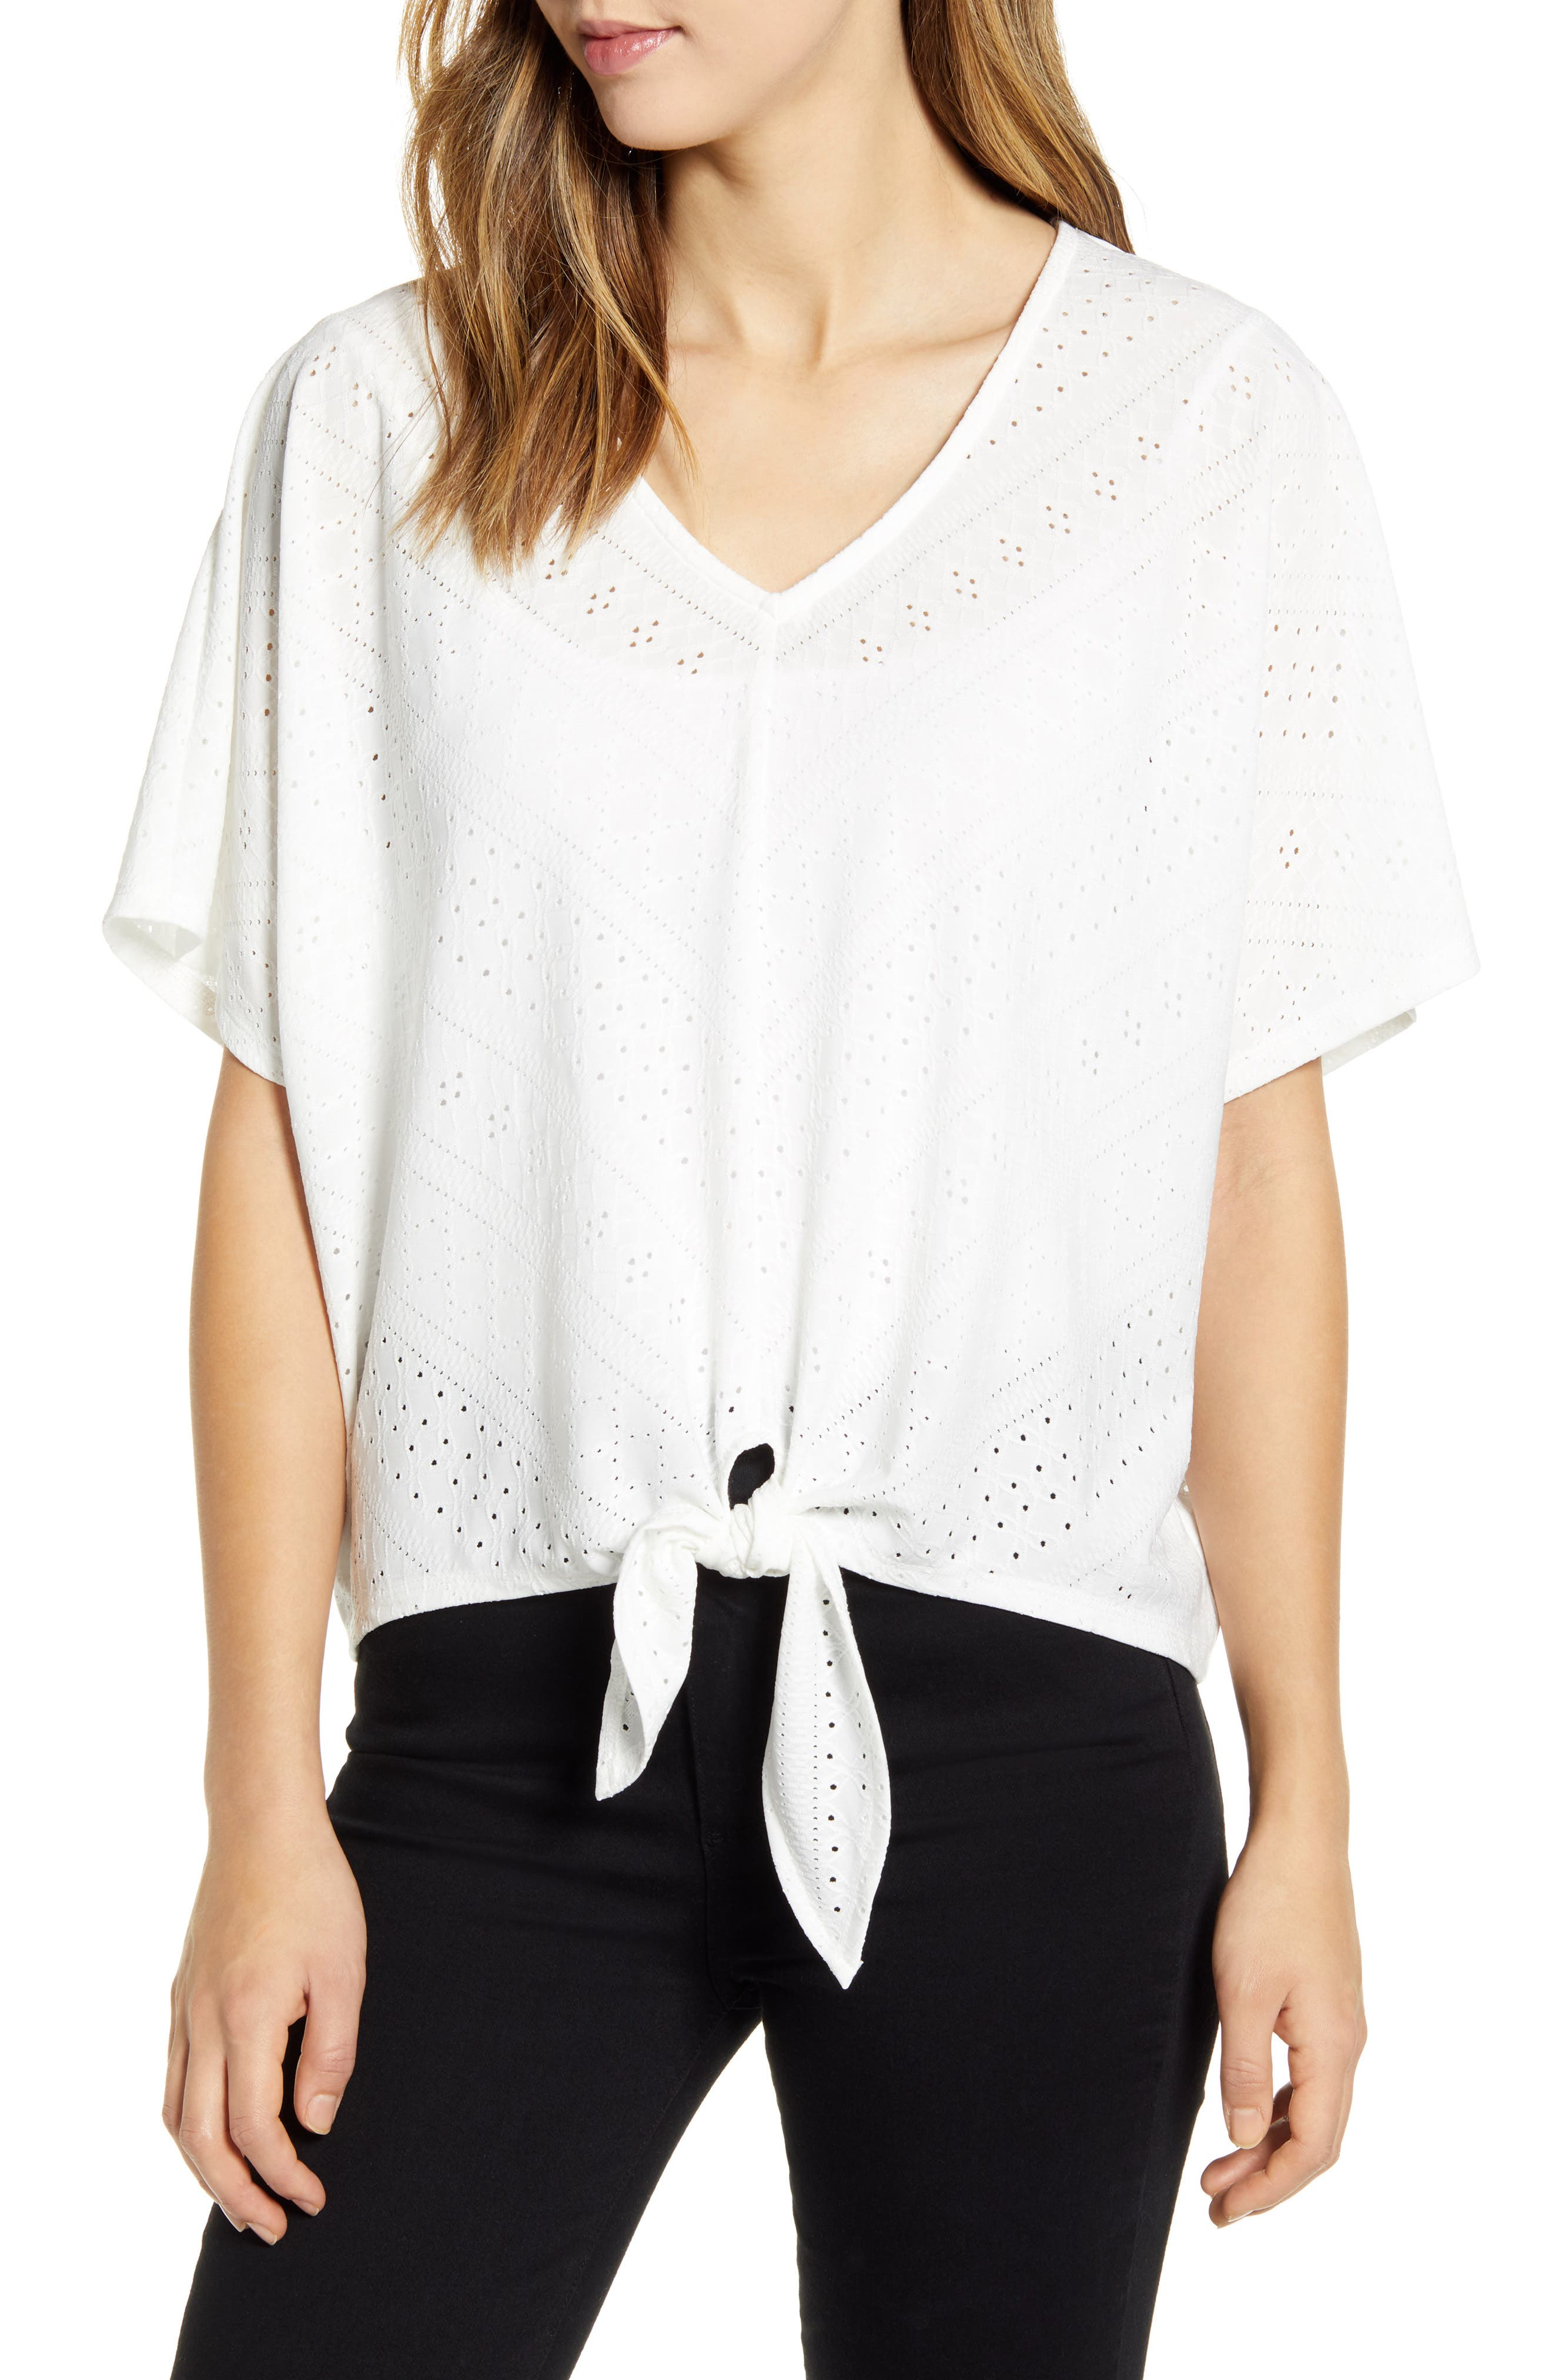 Airy pointelle jacquard brings charm to this summery top designed with drapey dolman sleeves and a cinched tie front. Style Name: Wit & Wisdom Pointelle Tie Front Top (Nordstrom Exclusive). Style Number: 6012666. Available in stores.